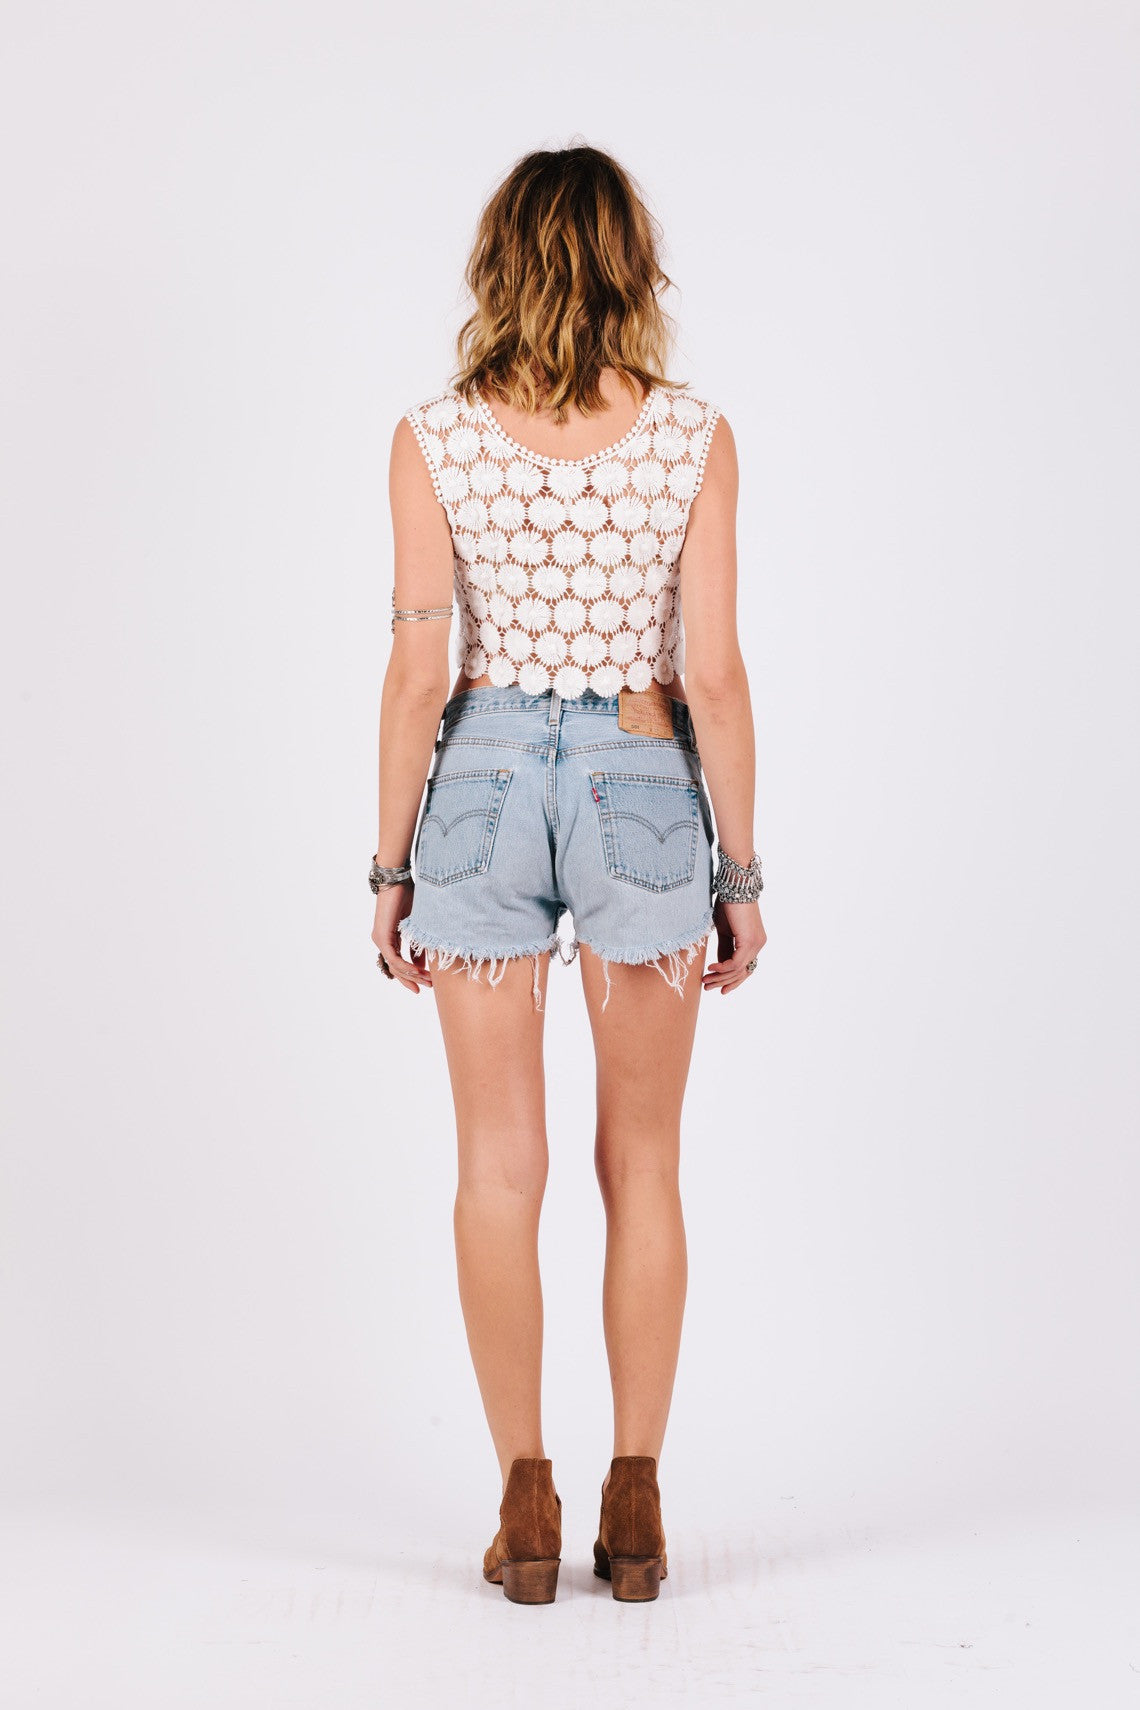 Lazy Daisy Crop Top-Women - Apparel - Shirts - Blouses-XS-Keyomi-Sook